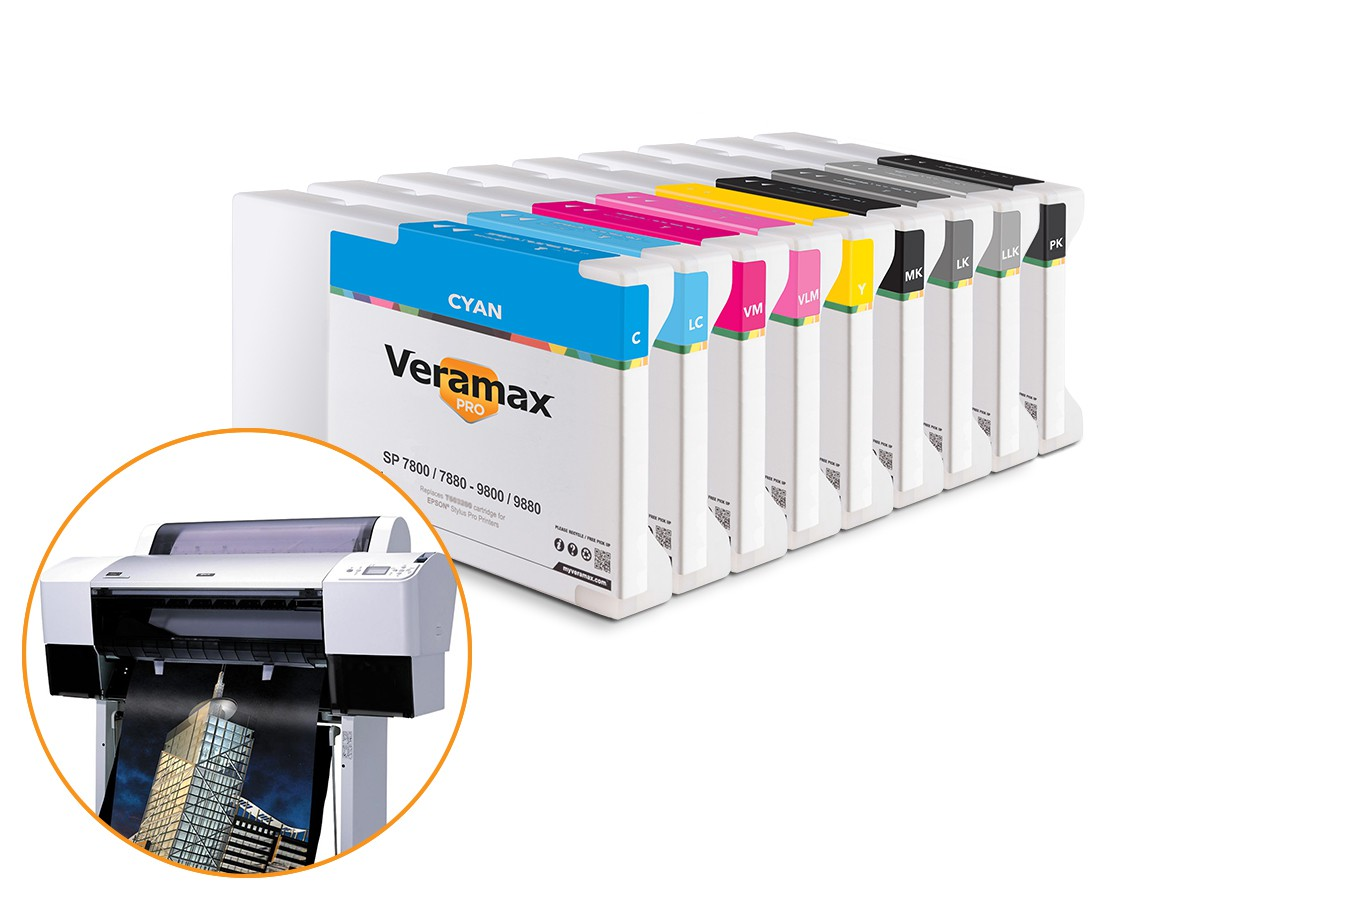 Veramax PRO Ink Cartridges for Stylus Pro 7880-9880 Printers